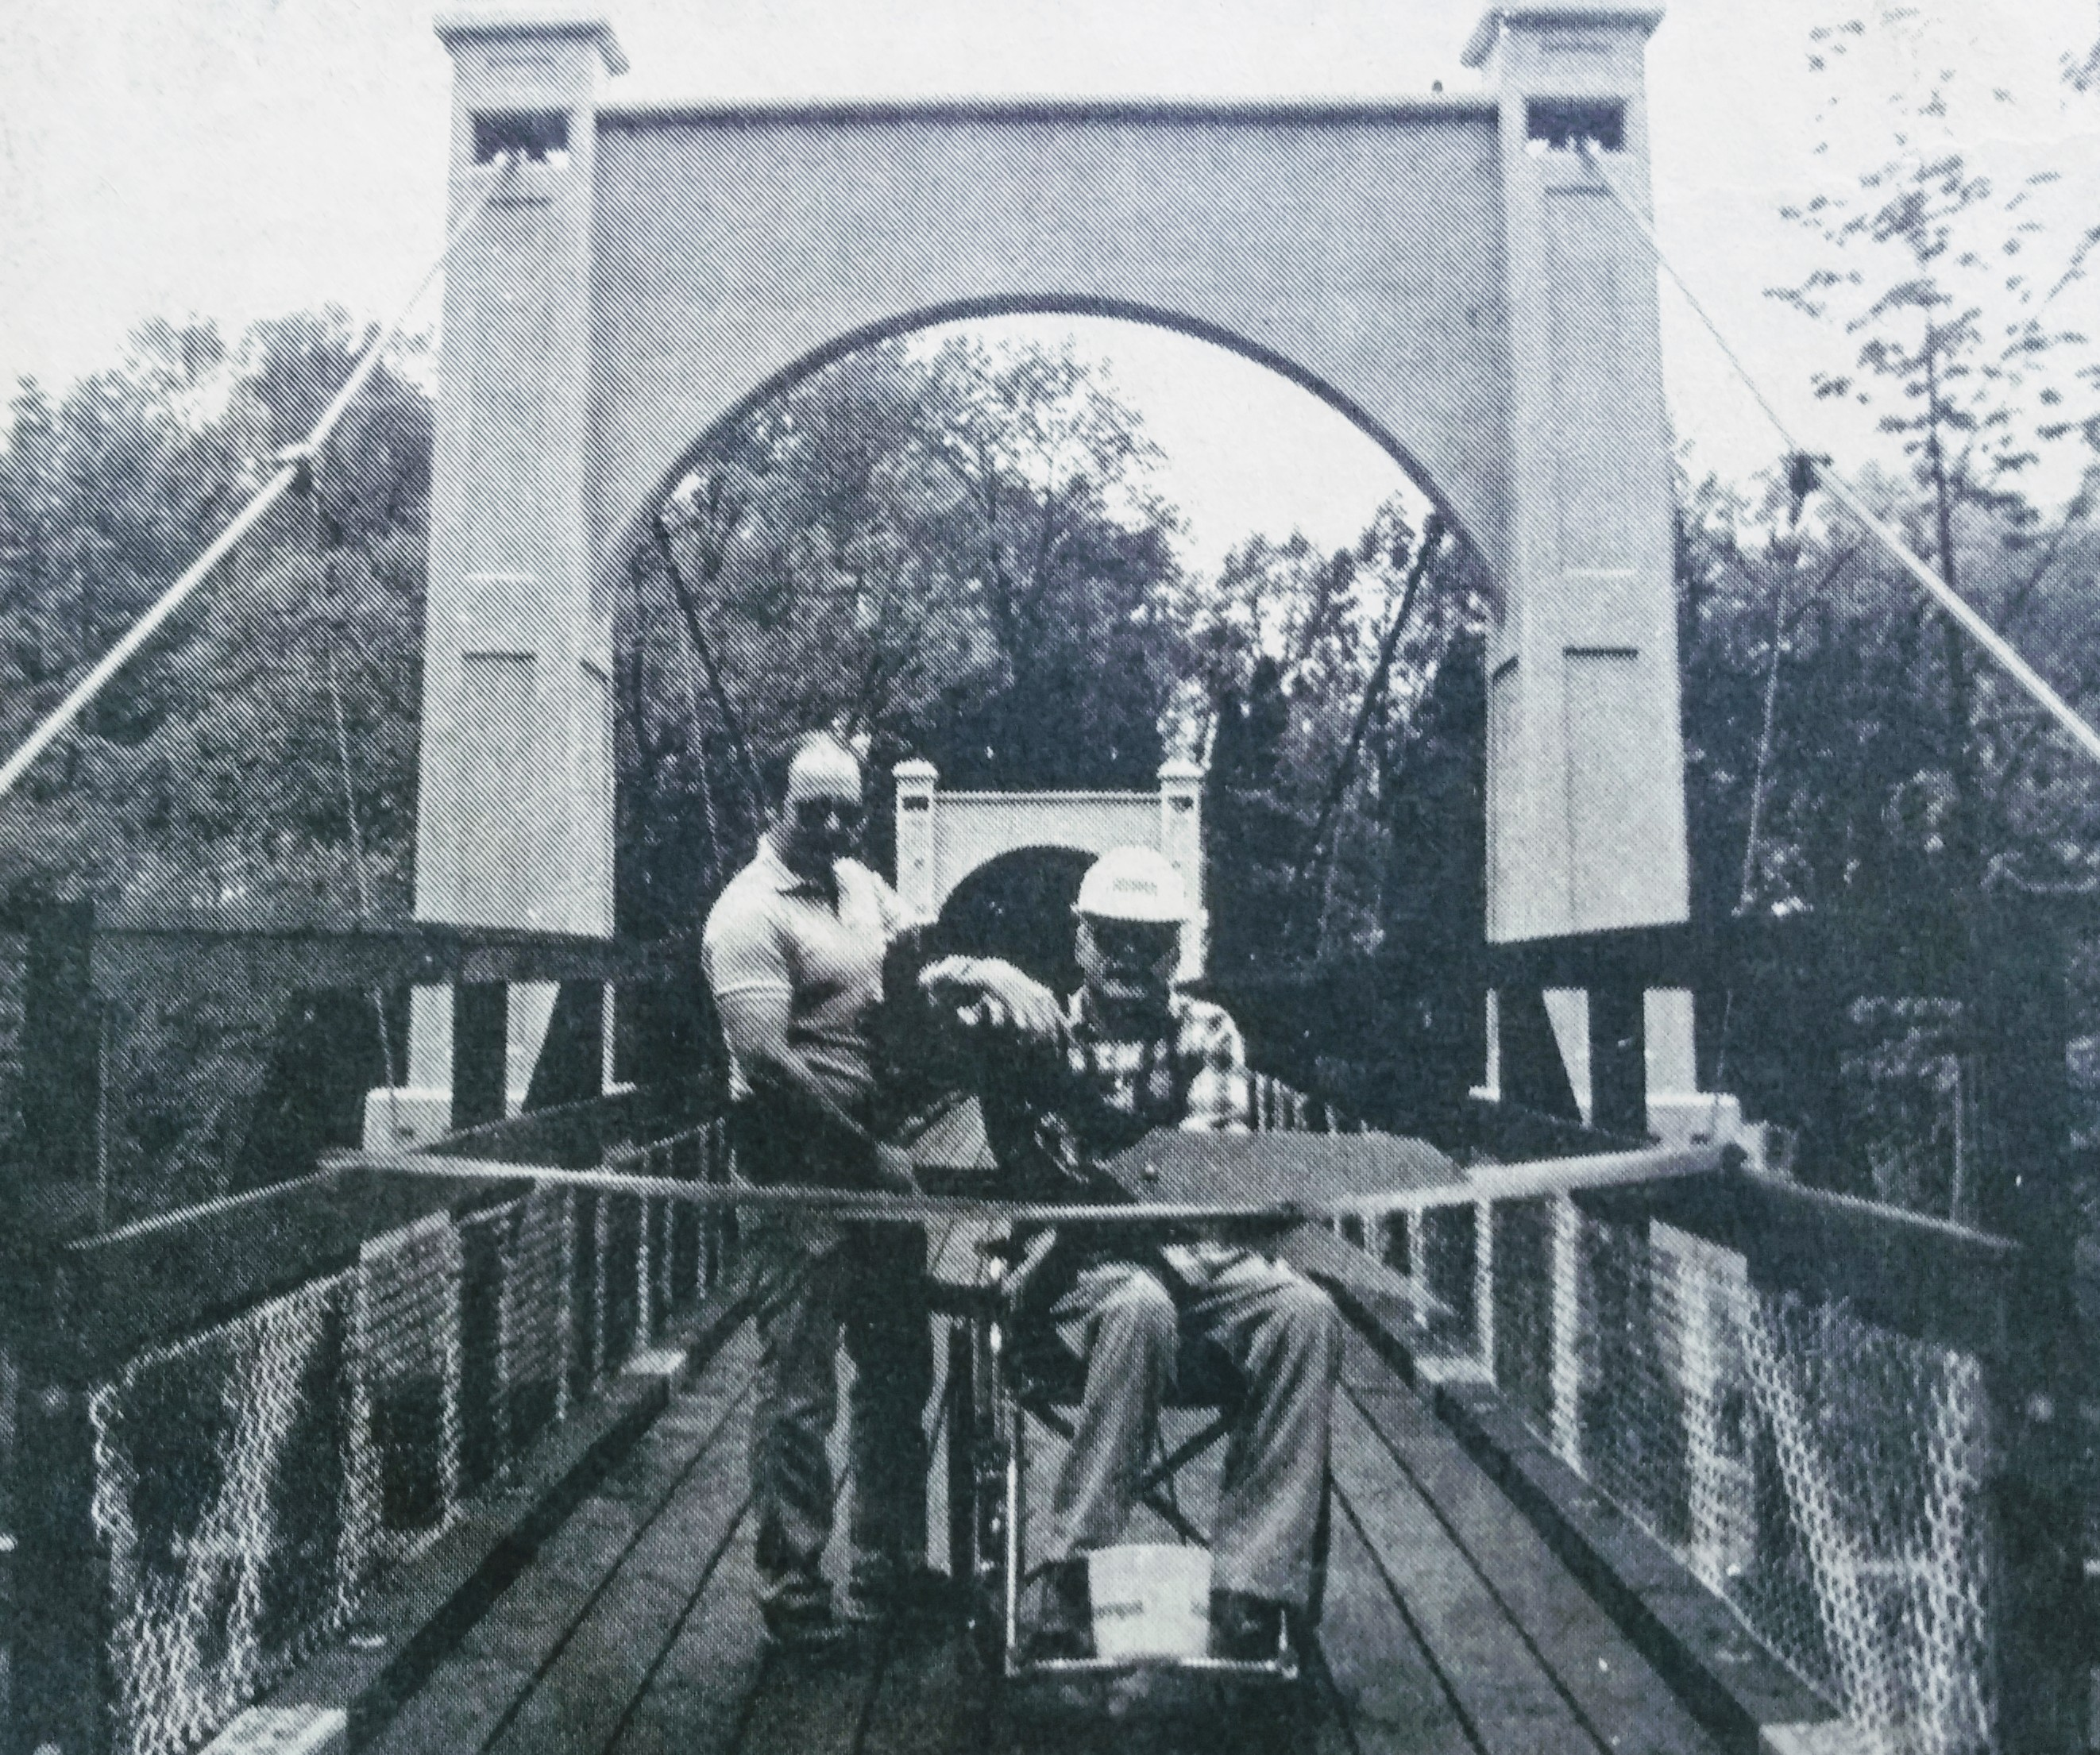 Pete Herpst (left) assists former city electrician Chuck Kelly with ribbon cutting, following the Swinging Bridge rehabilitation in 1986. (Photo by Pat Petricka, courtesy of RiverTown Multimedia and the River Falls Journal)